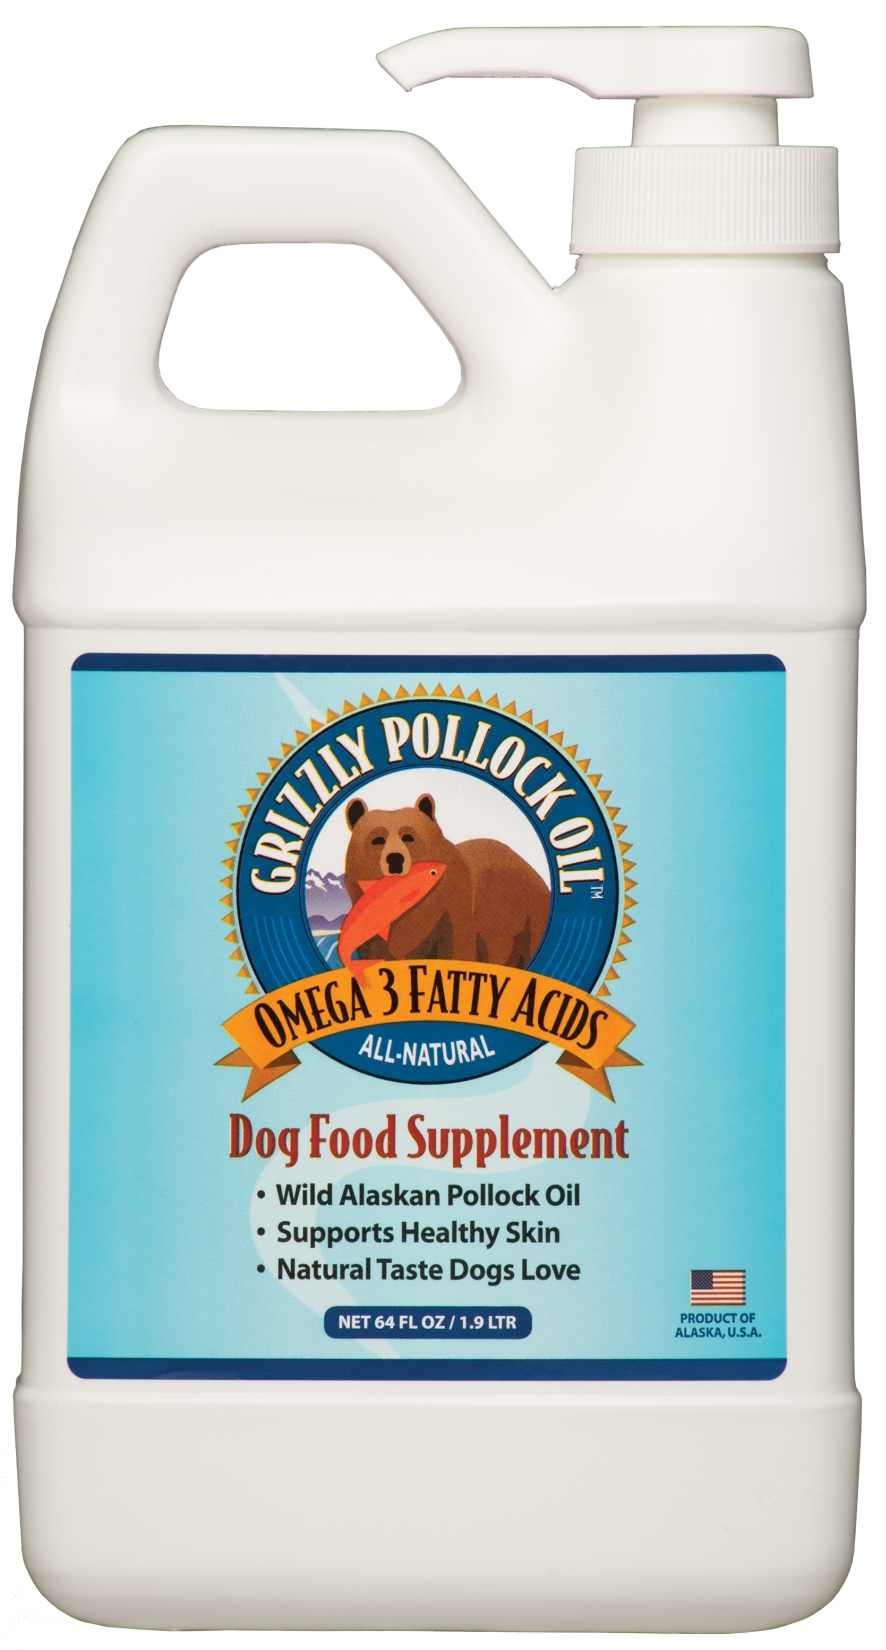 Grizzly Pollock Oil 64 oz (1.9 L) by Grizzly Pet Products